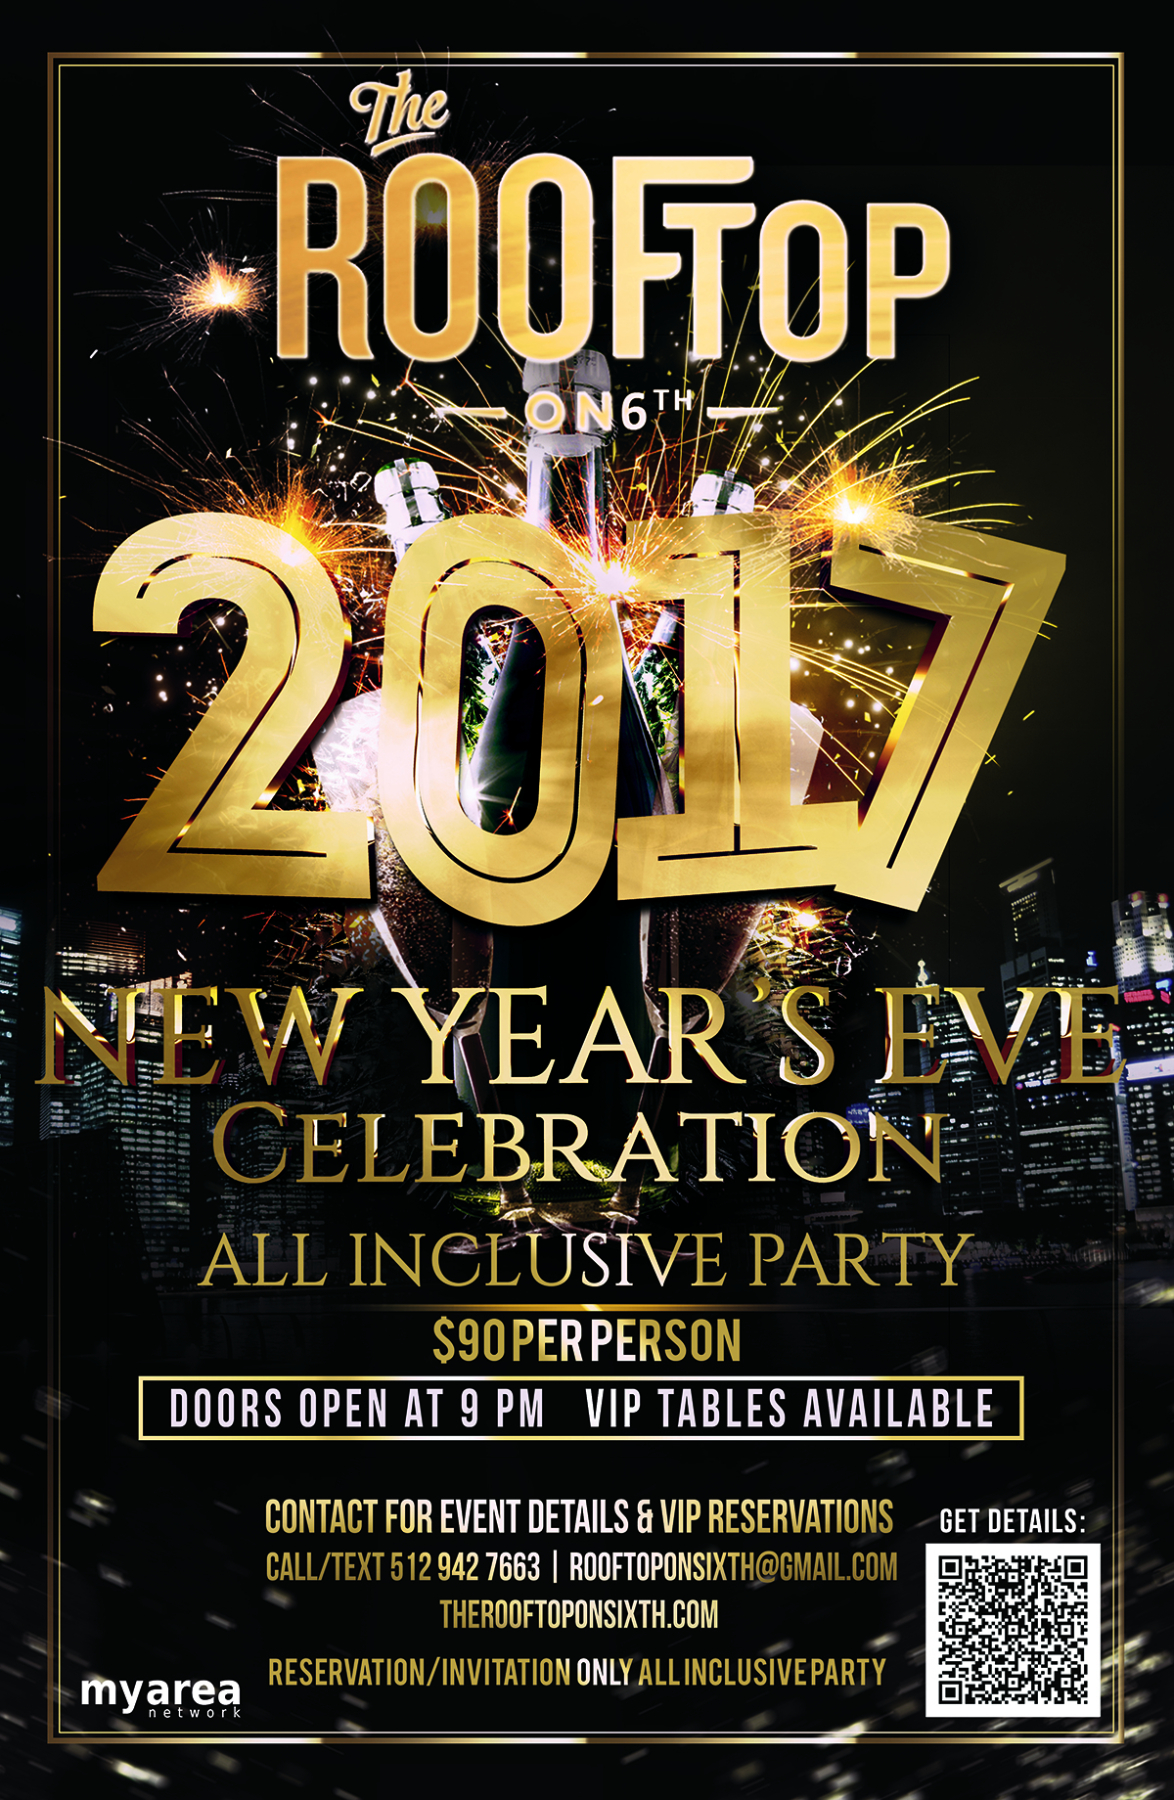 New Year S Eve 2017 Vip Party At The Rooftop On 6th